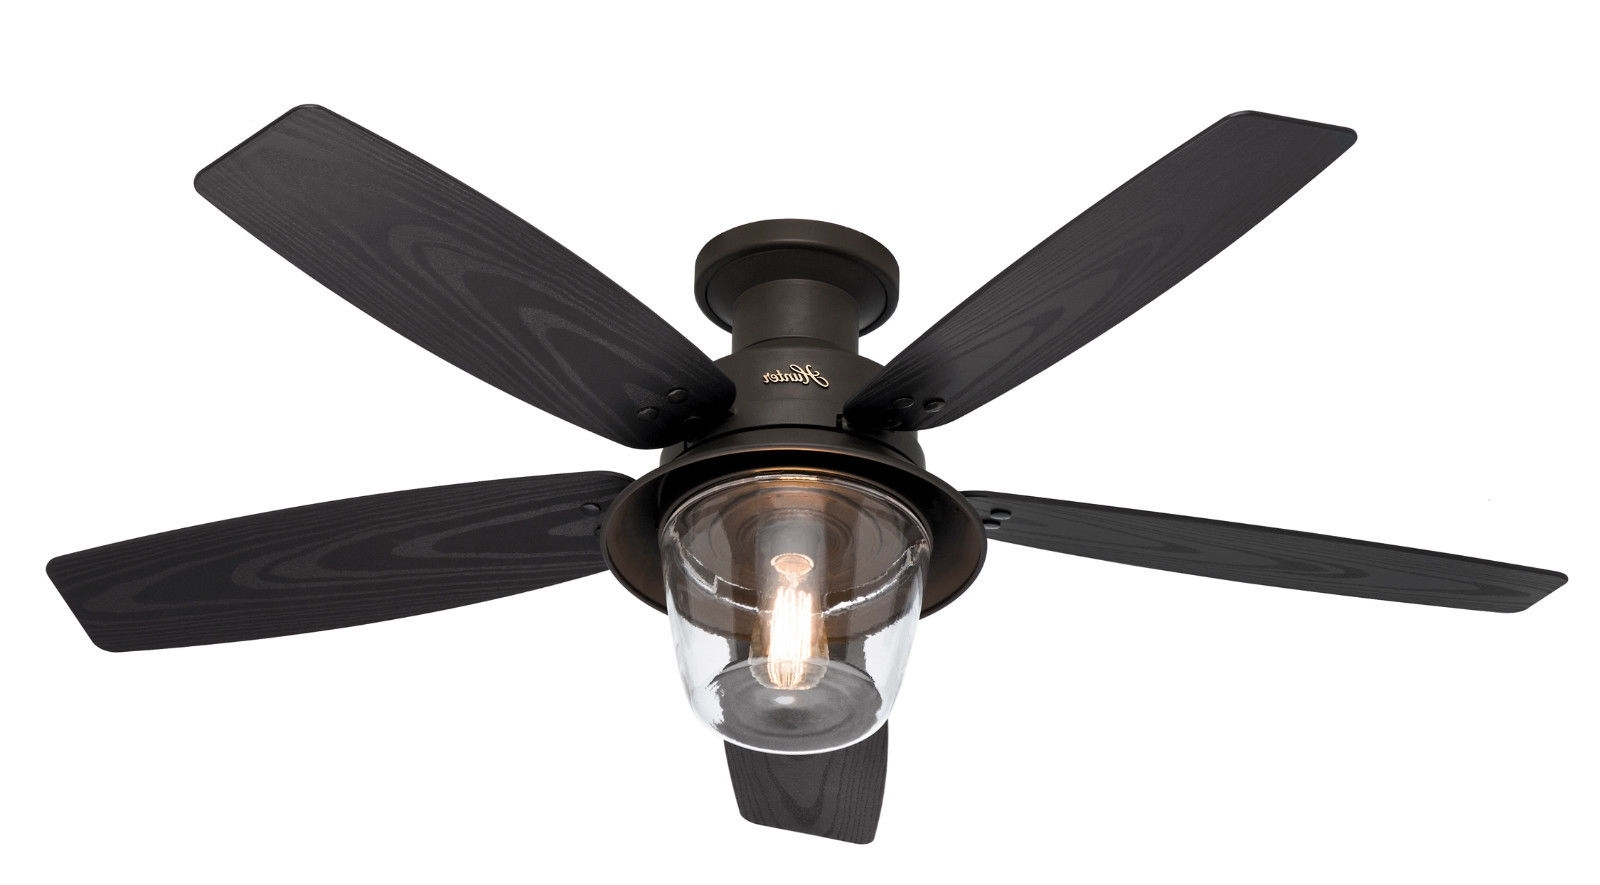 2018 Getting All Lighting Convinience With Hunter Lights And, Hunter Inside Hunter Outdoor Ceiling Fans With Lights (View 19 of 20)